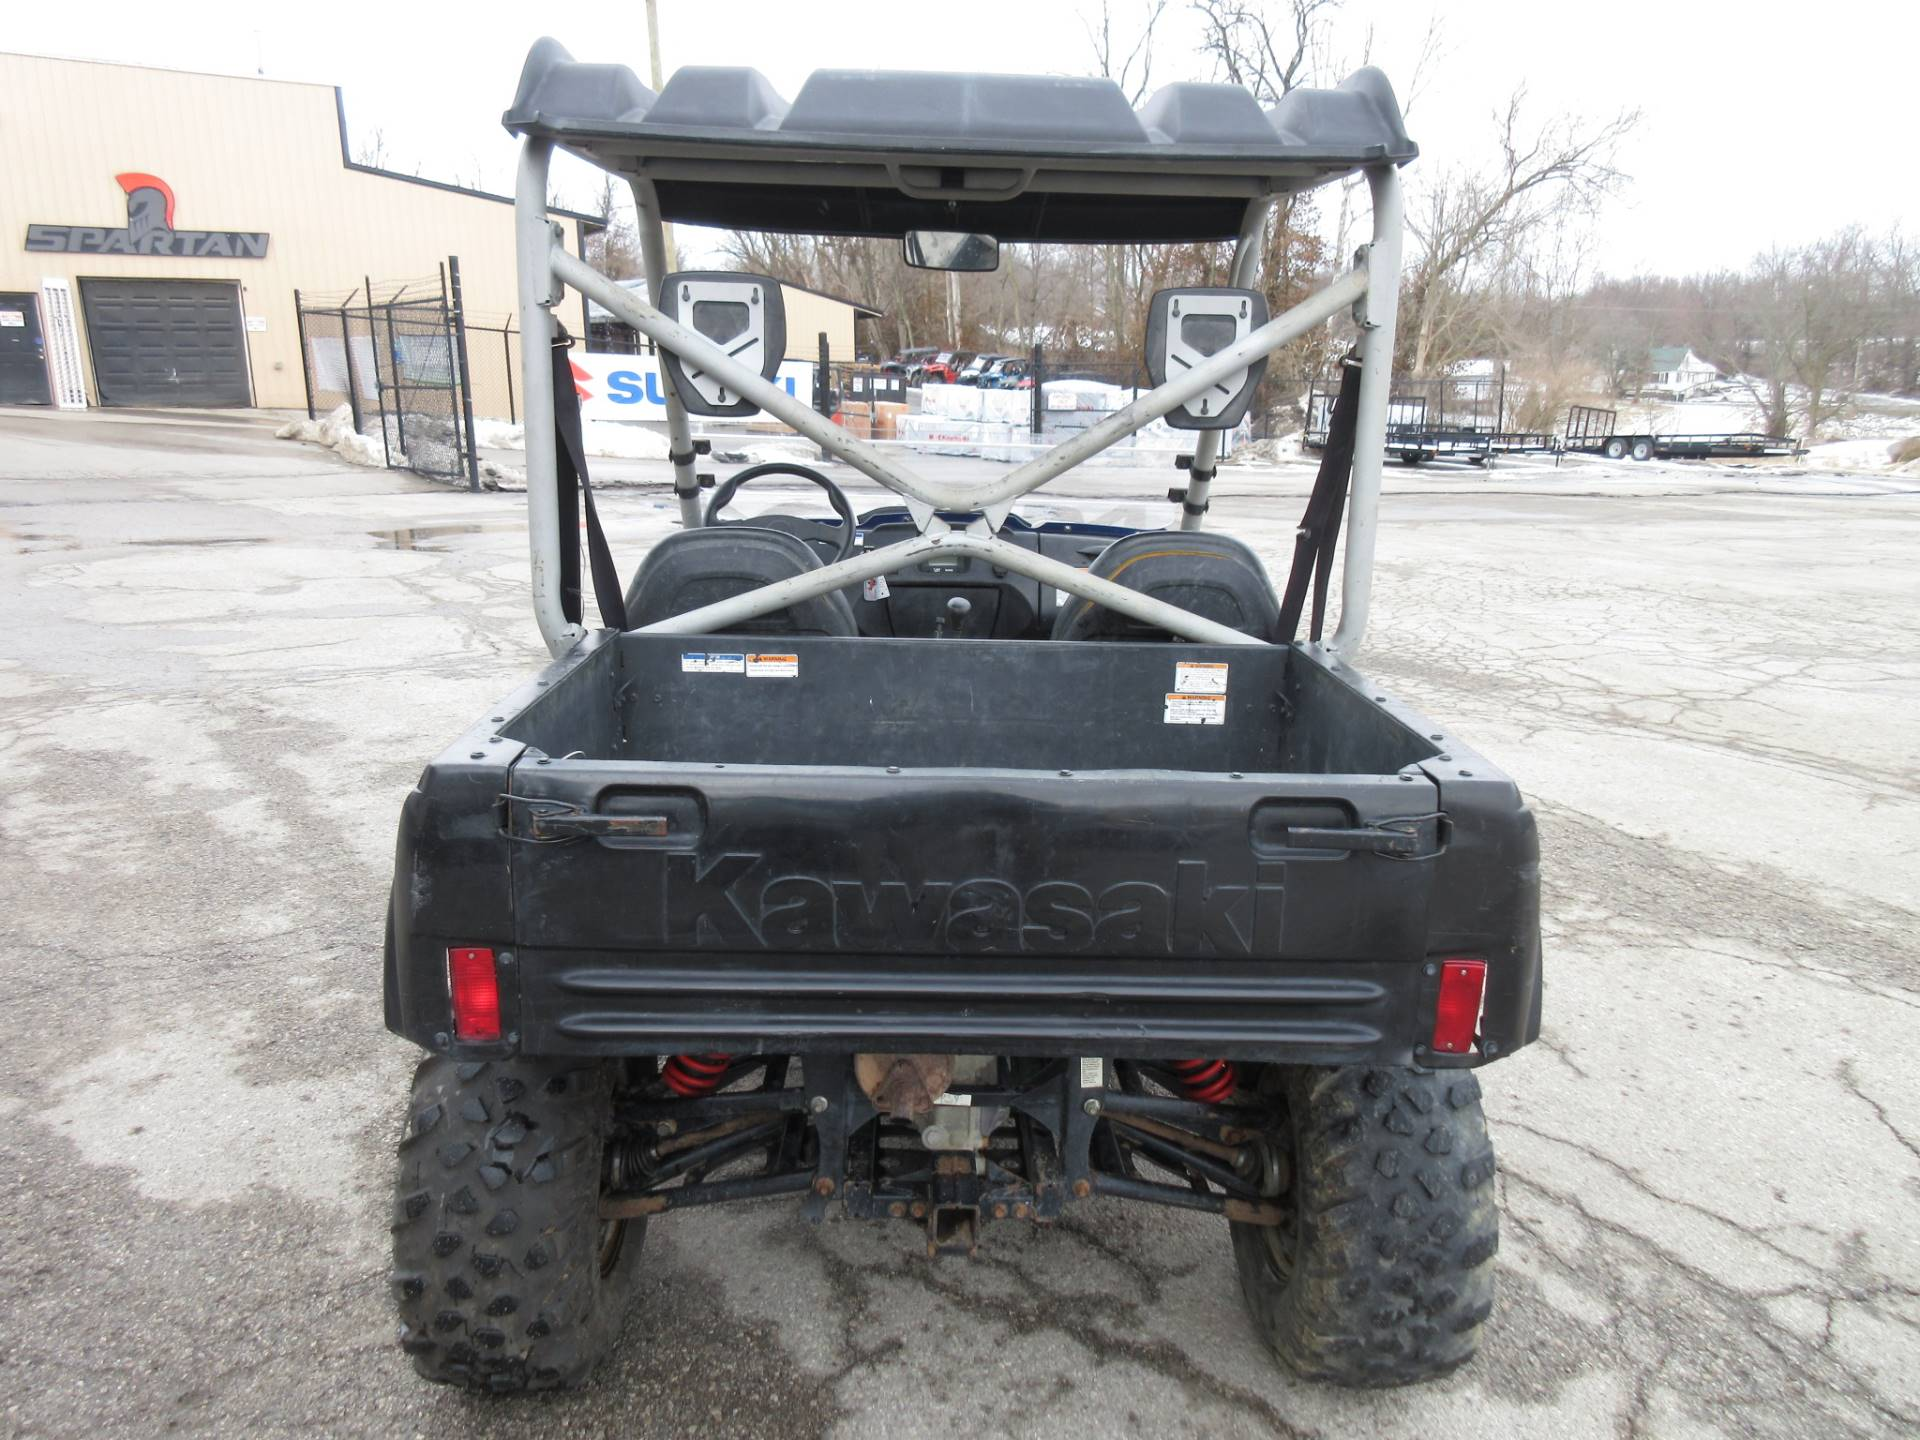 2011 Kawasaki Teryx™ 750 FI 4x4 LE in Georgetown, Kentucky - Photo 4